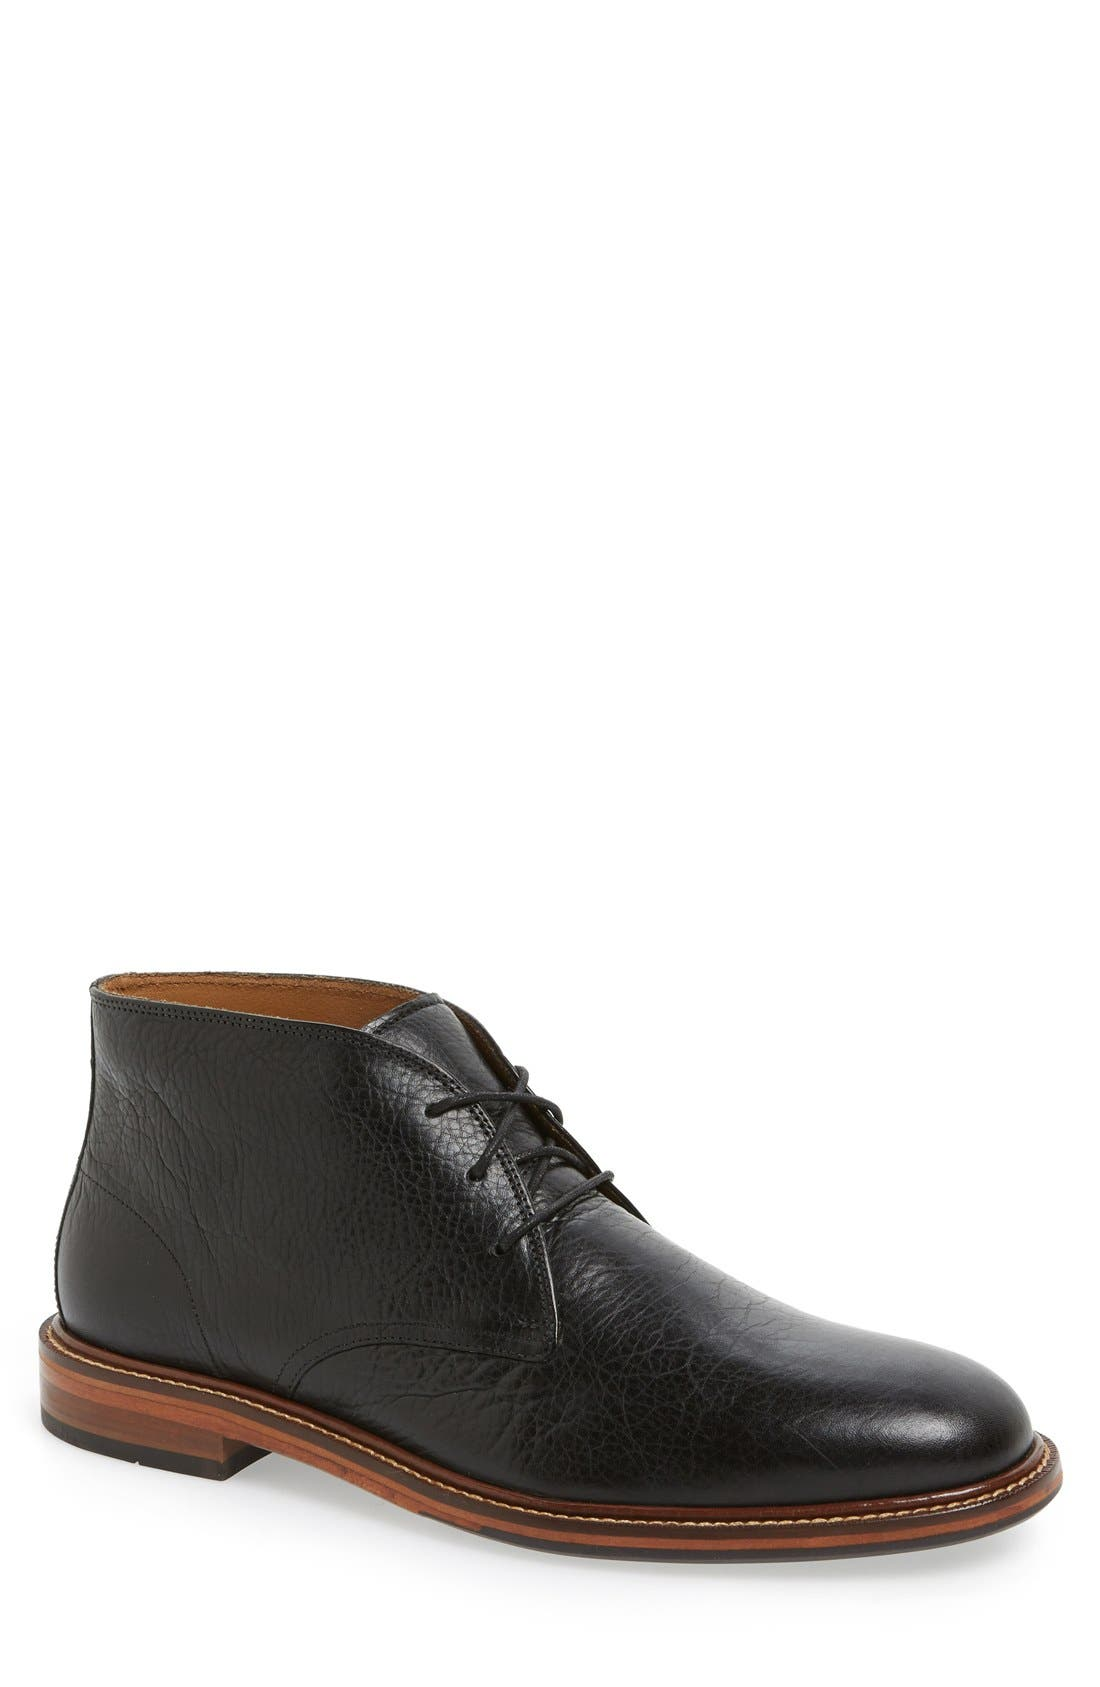 'Barron' Chukka Boot,                         Main,                         color, Black